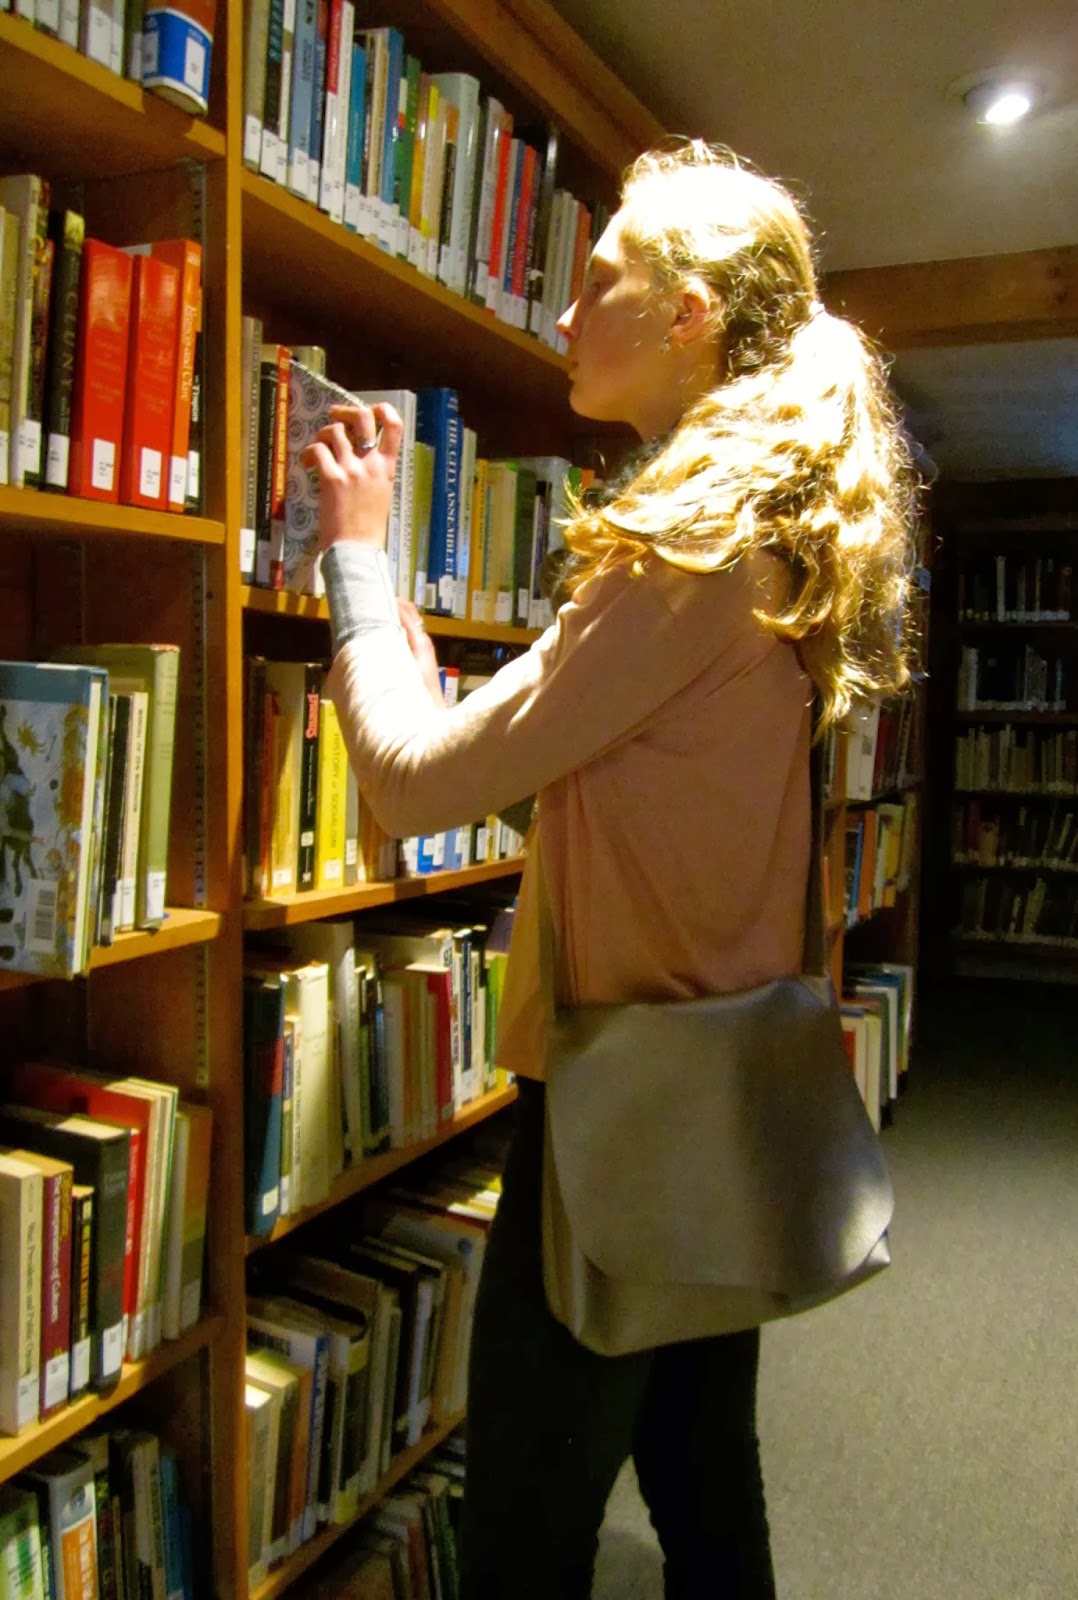 Theres Nothing Like Library On Rainy >> Petite Maison Of Fashion Reference